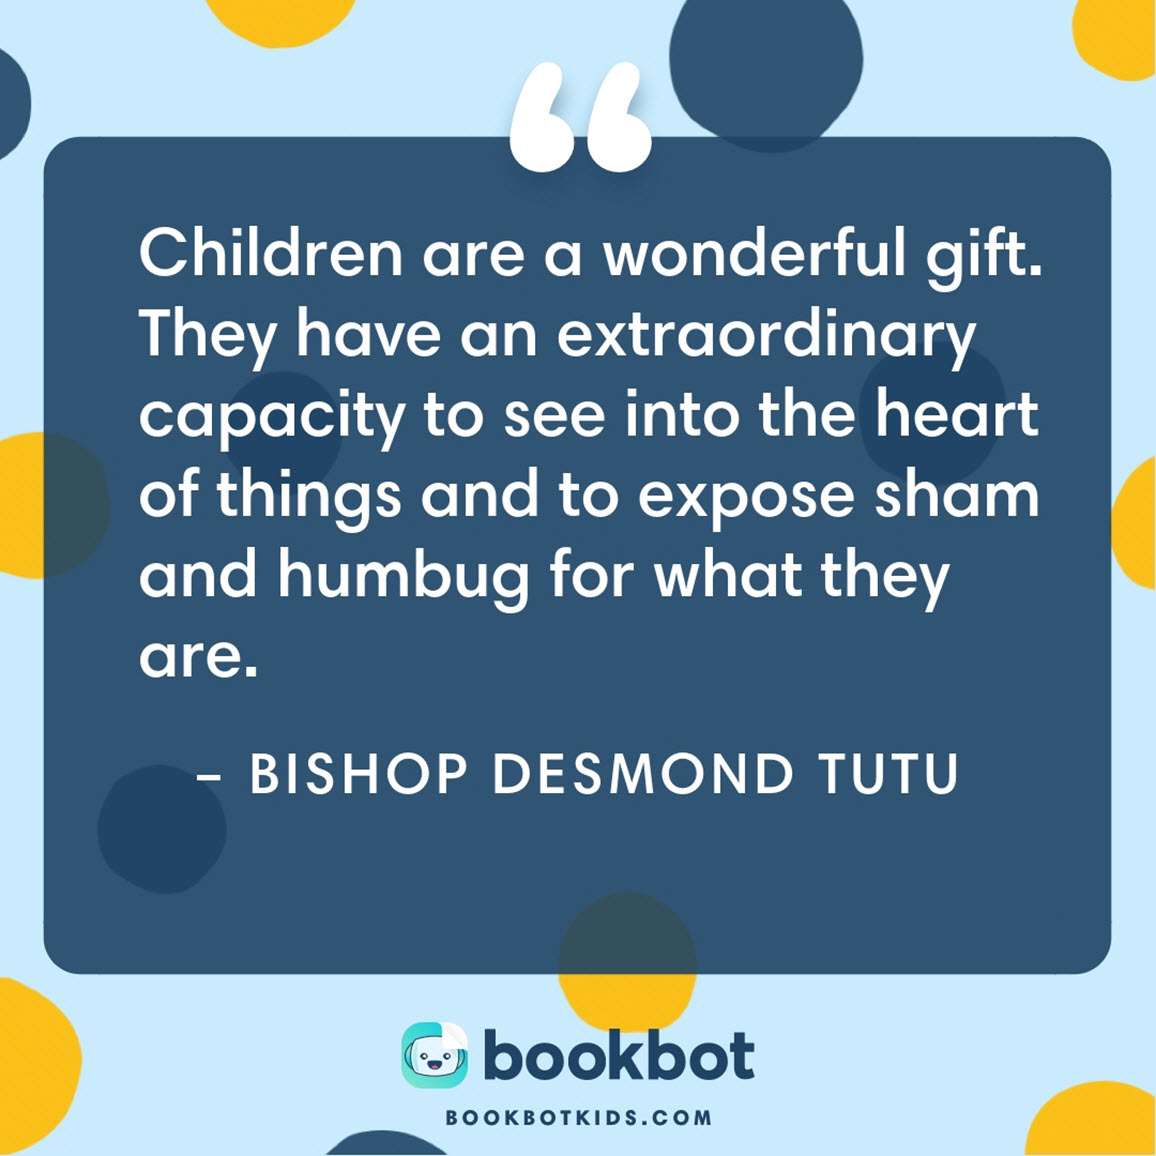 Children are a wonderful gift. They have an extraordinary capacity to see into the heart of things and to expose sham and humbug for what they are. – Bishop Desmond Tutu